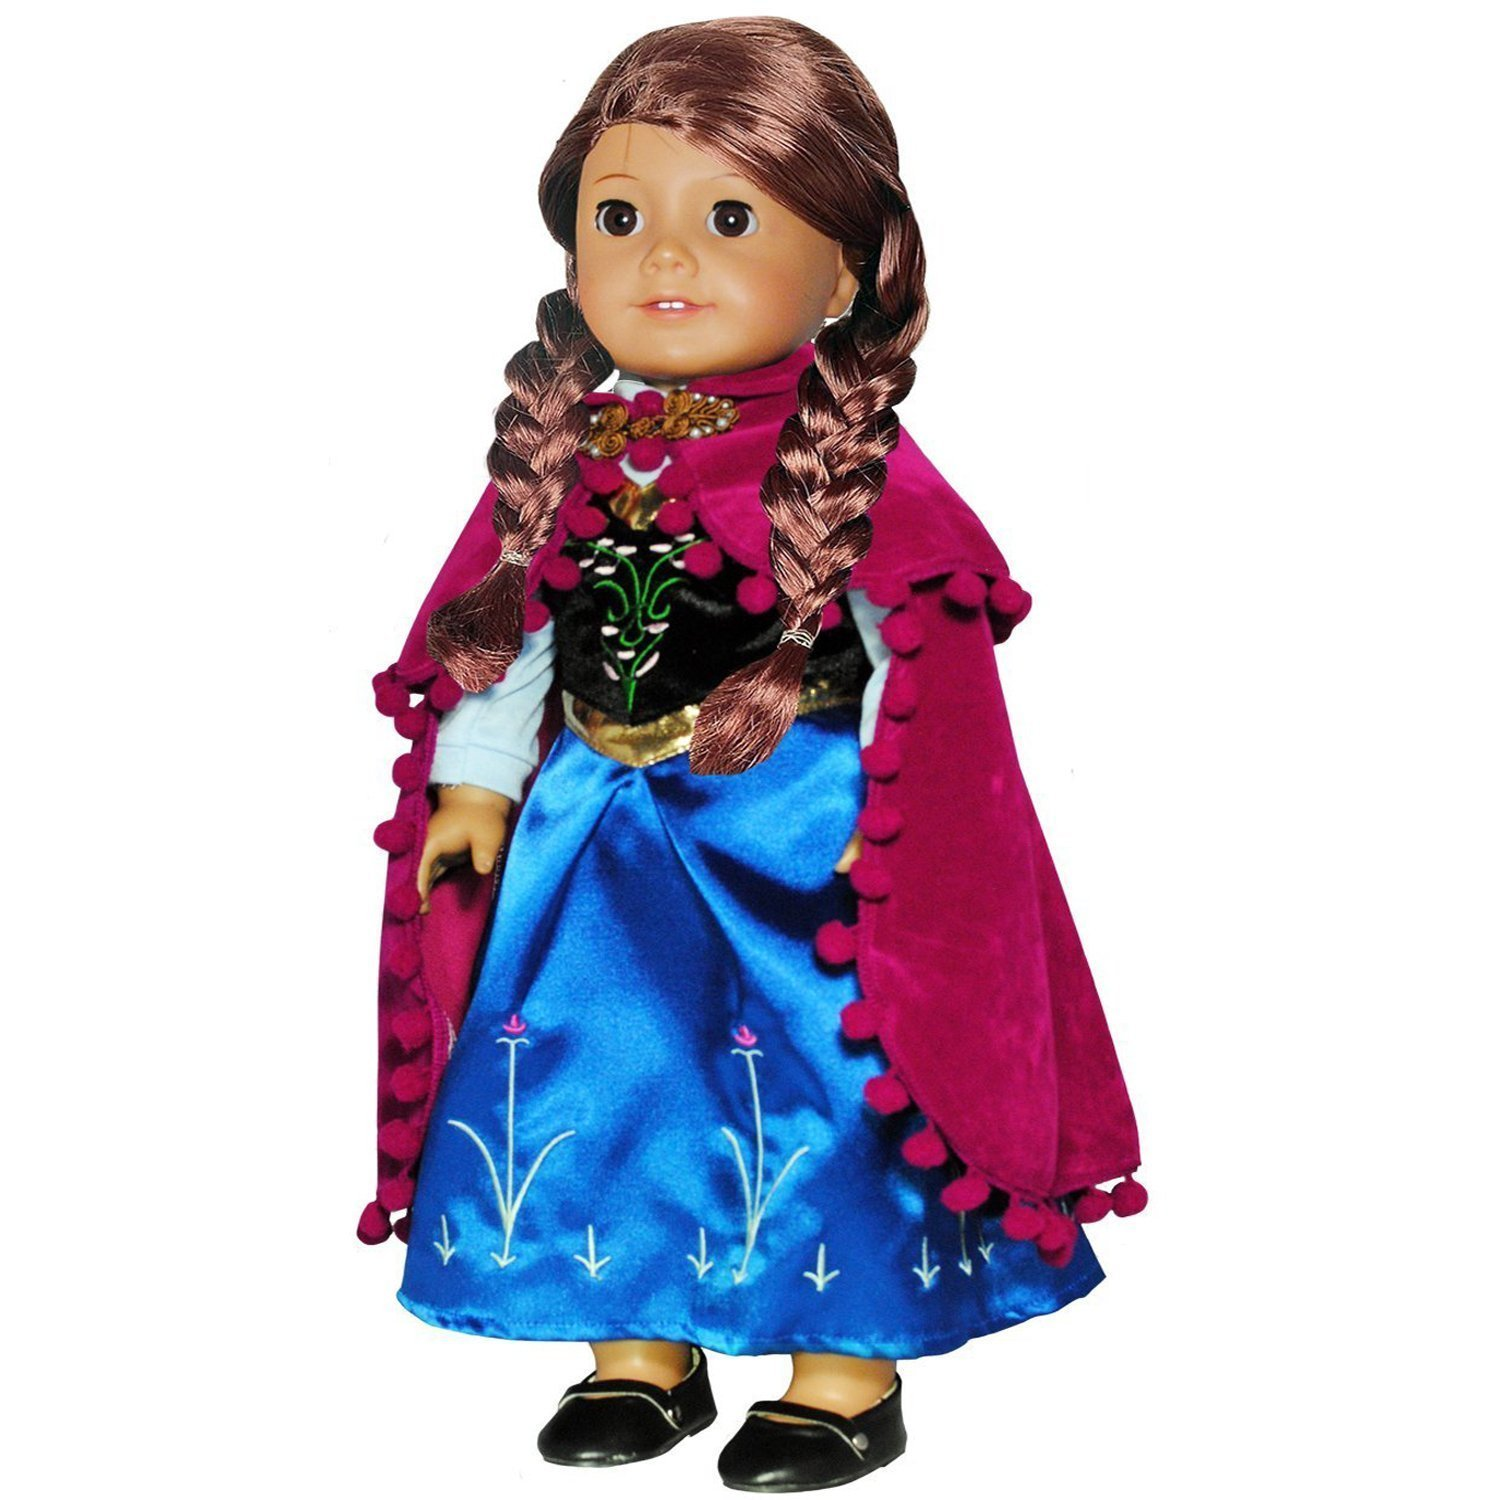 Doll Clothes Princess Anna Dress Outfit WITH EMBROIDERED DETAILS Fits American Girl Doll... by Pink Butterfly Closet